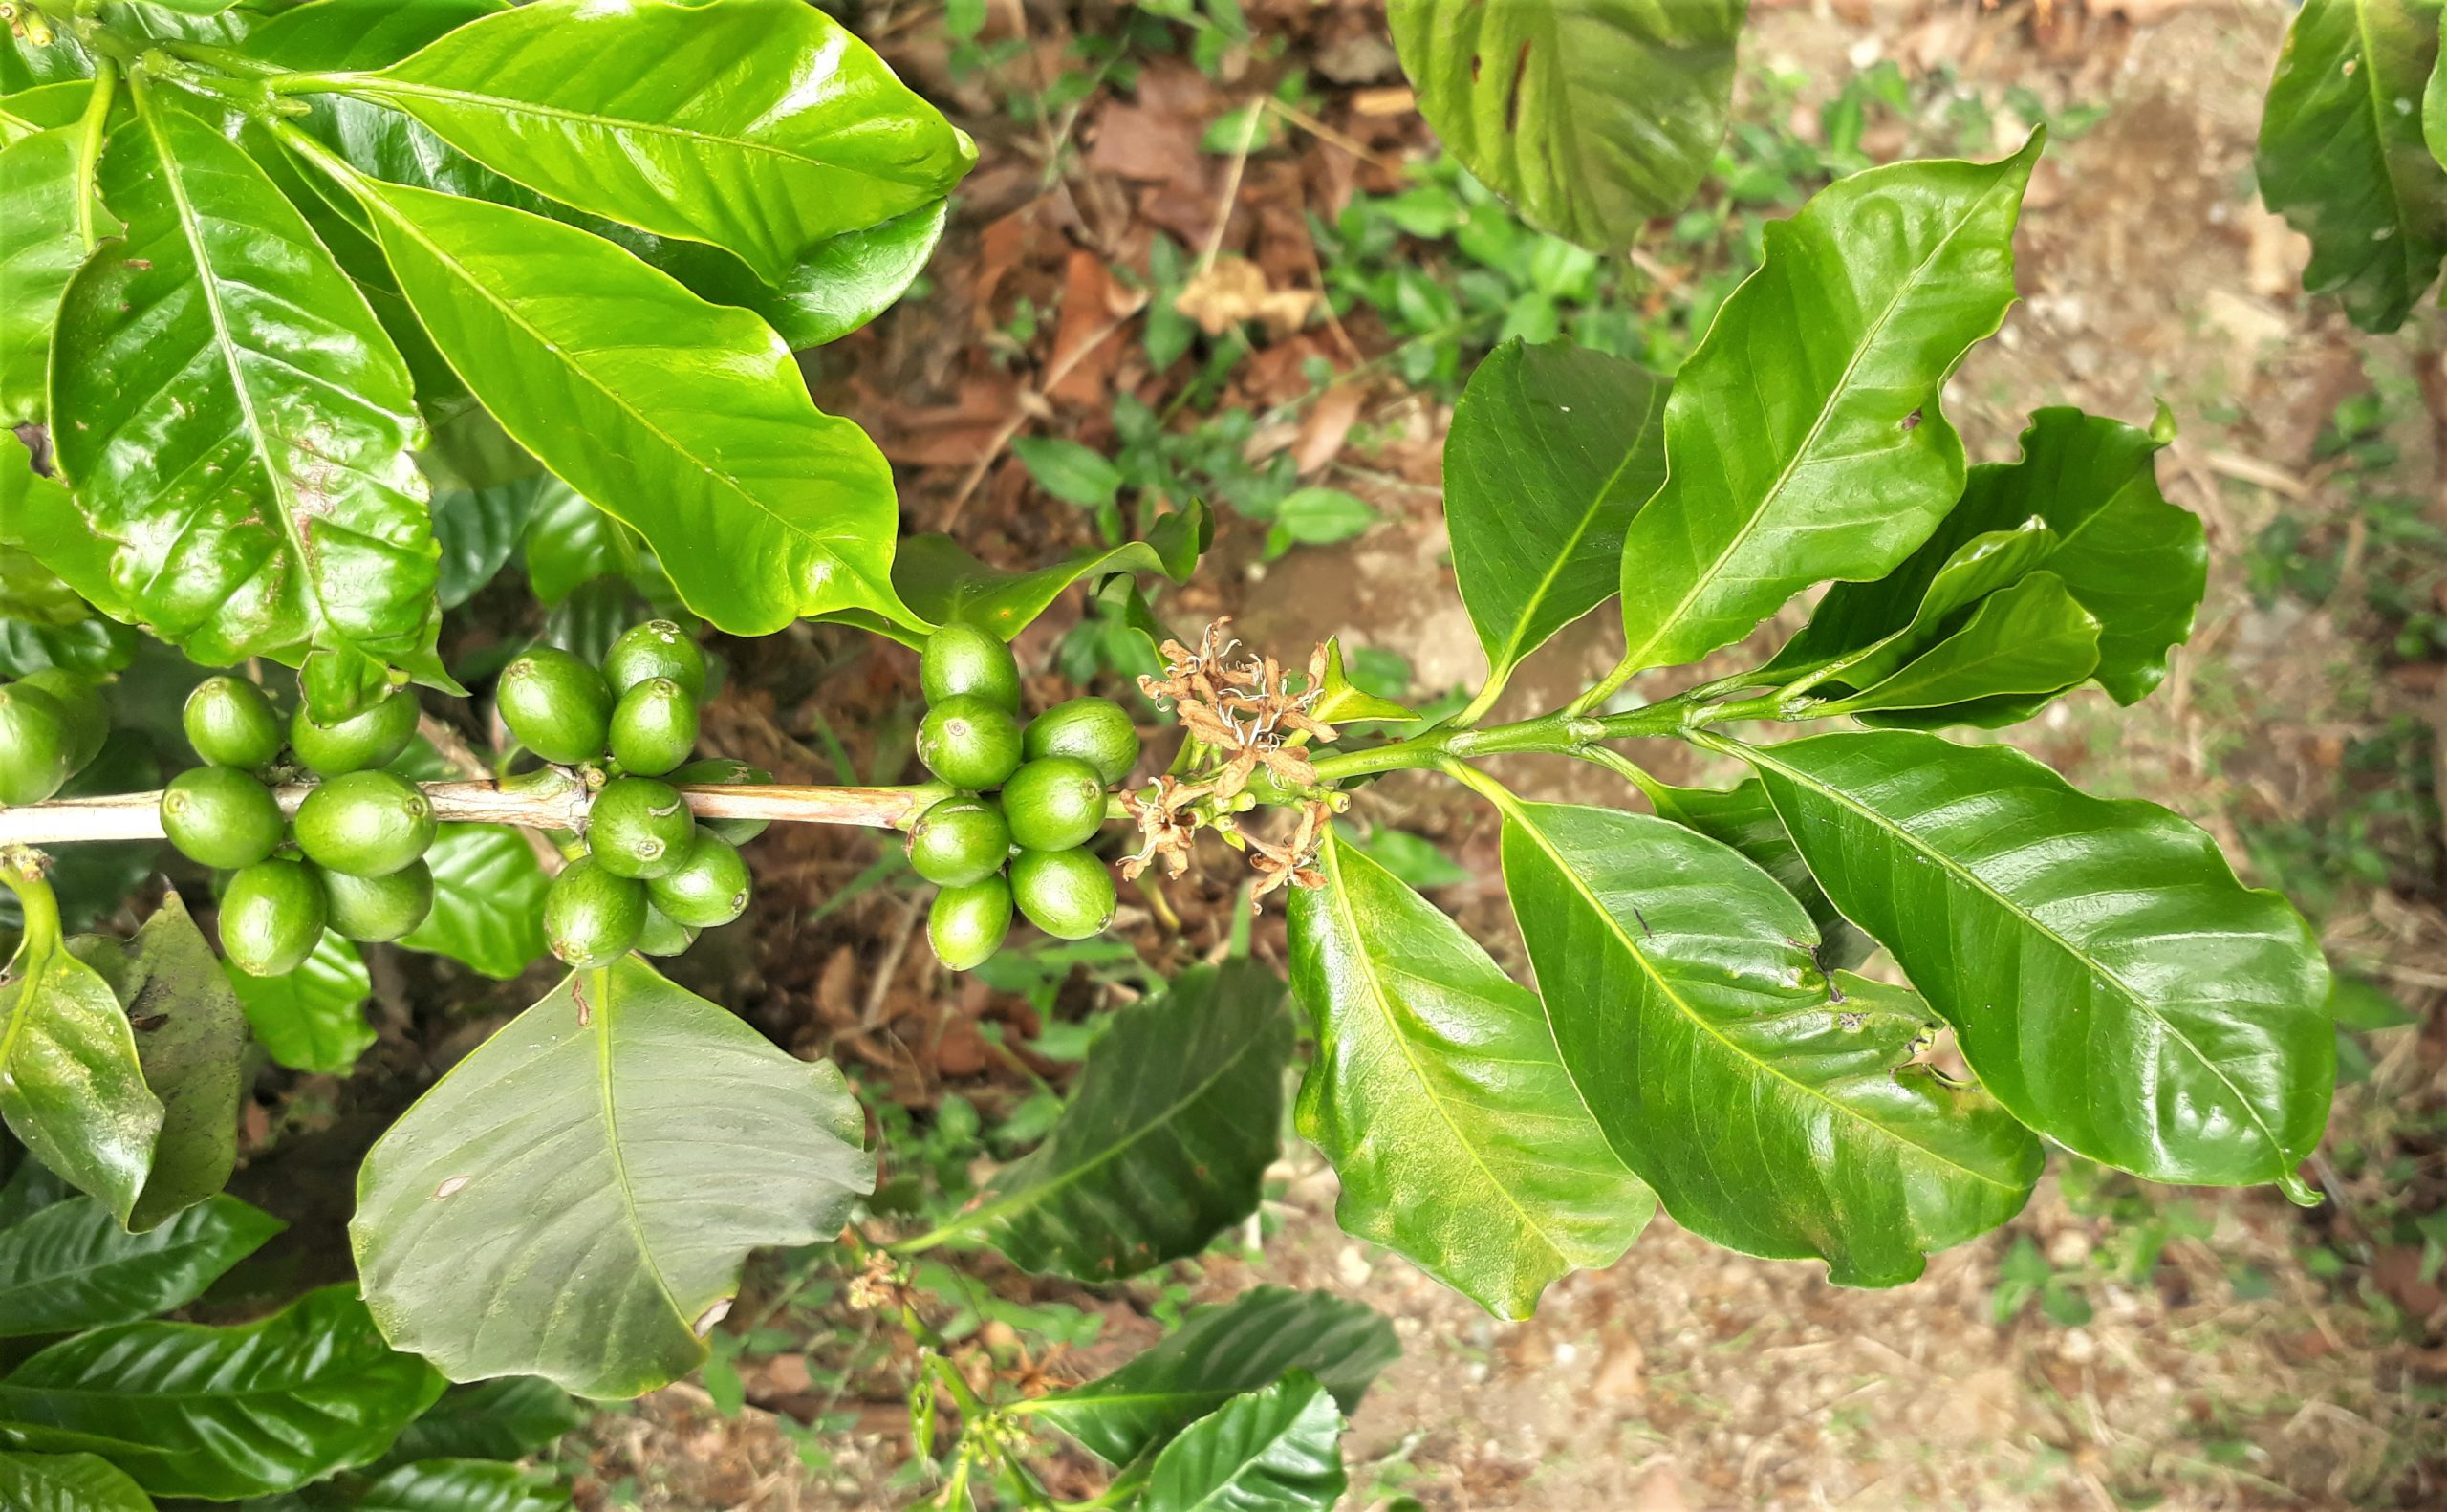 Green coffee cherries in a branch